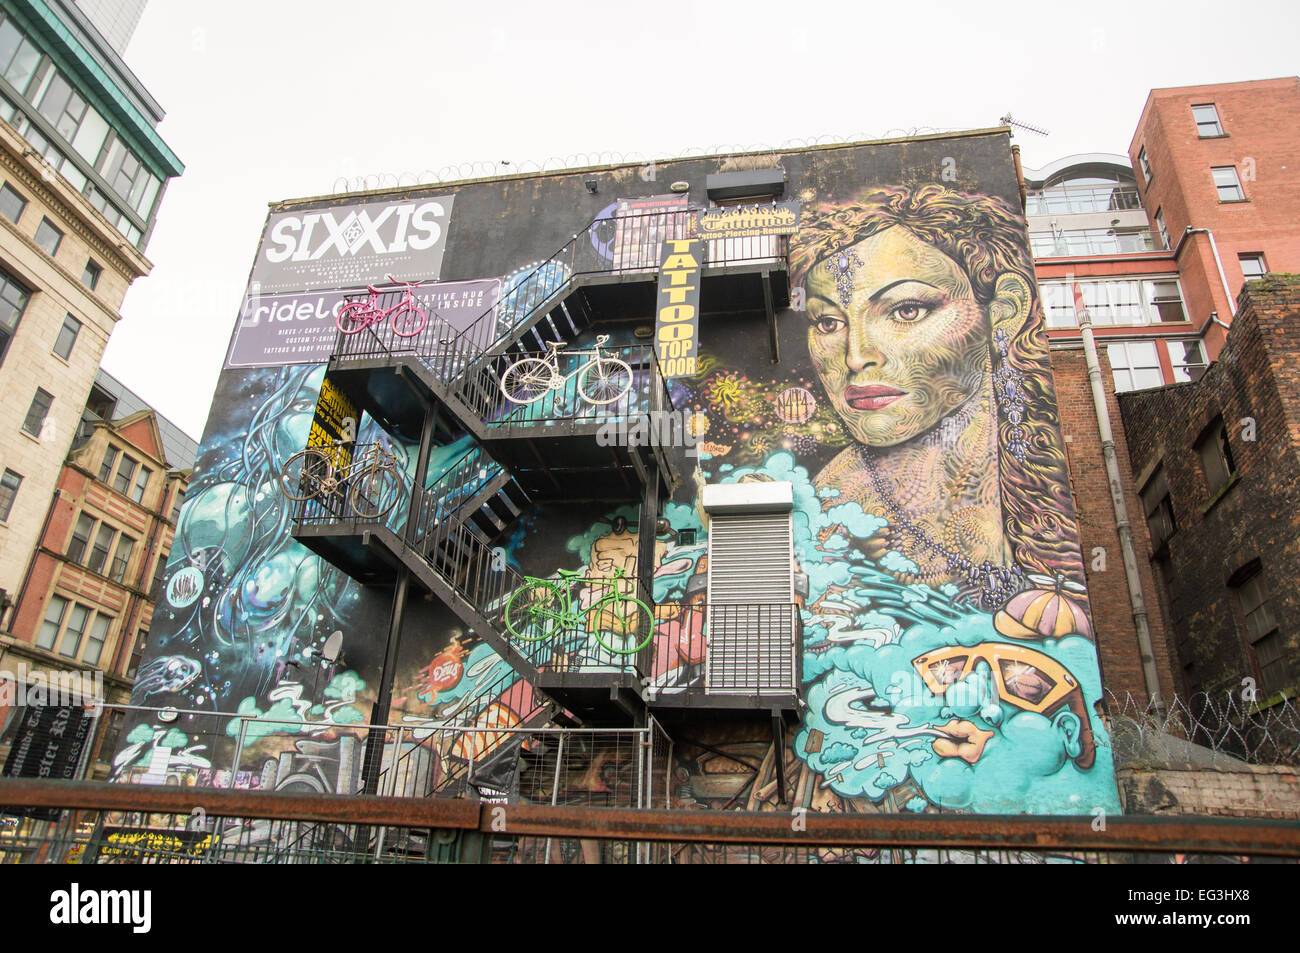 Earth, Wind, Fire and Water Graffiti Art Mural in Manchester City Centre - Stock Image